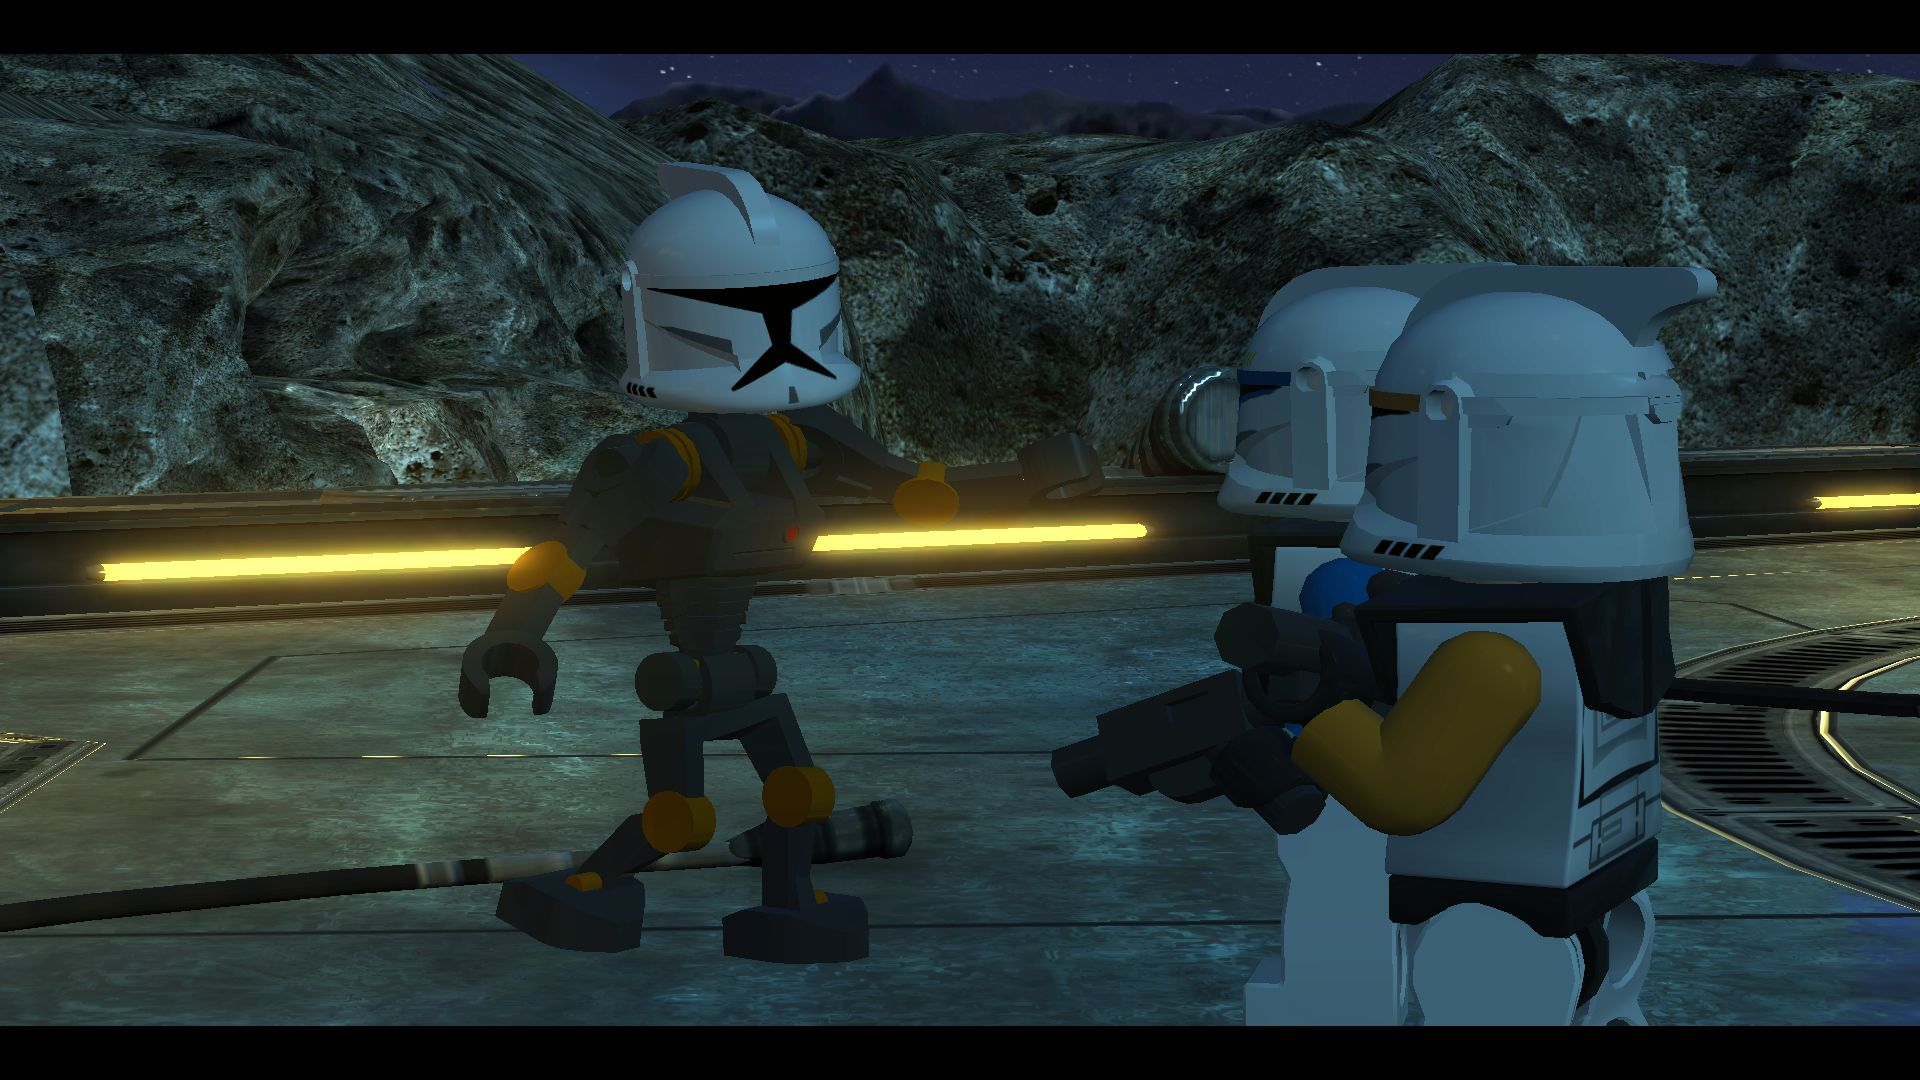 Lego Star Wars Iii The Clone Wars On Steam